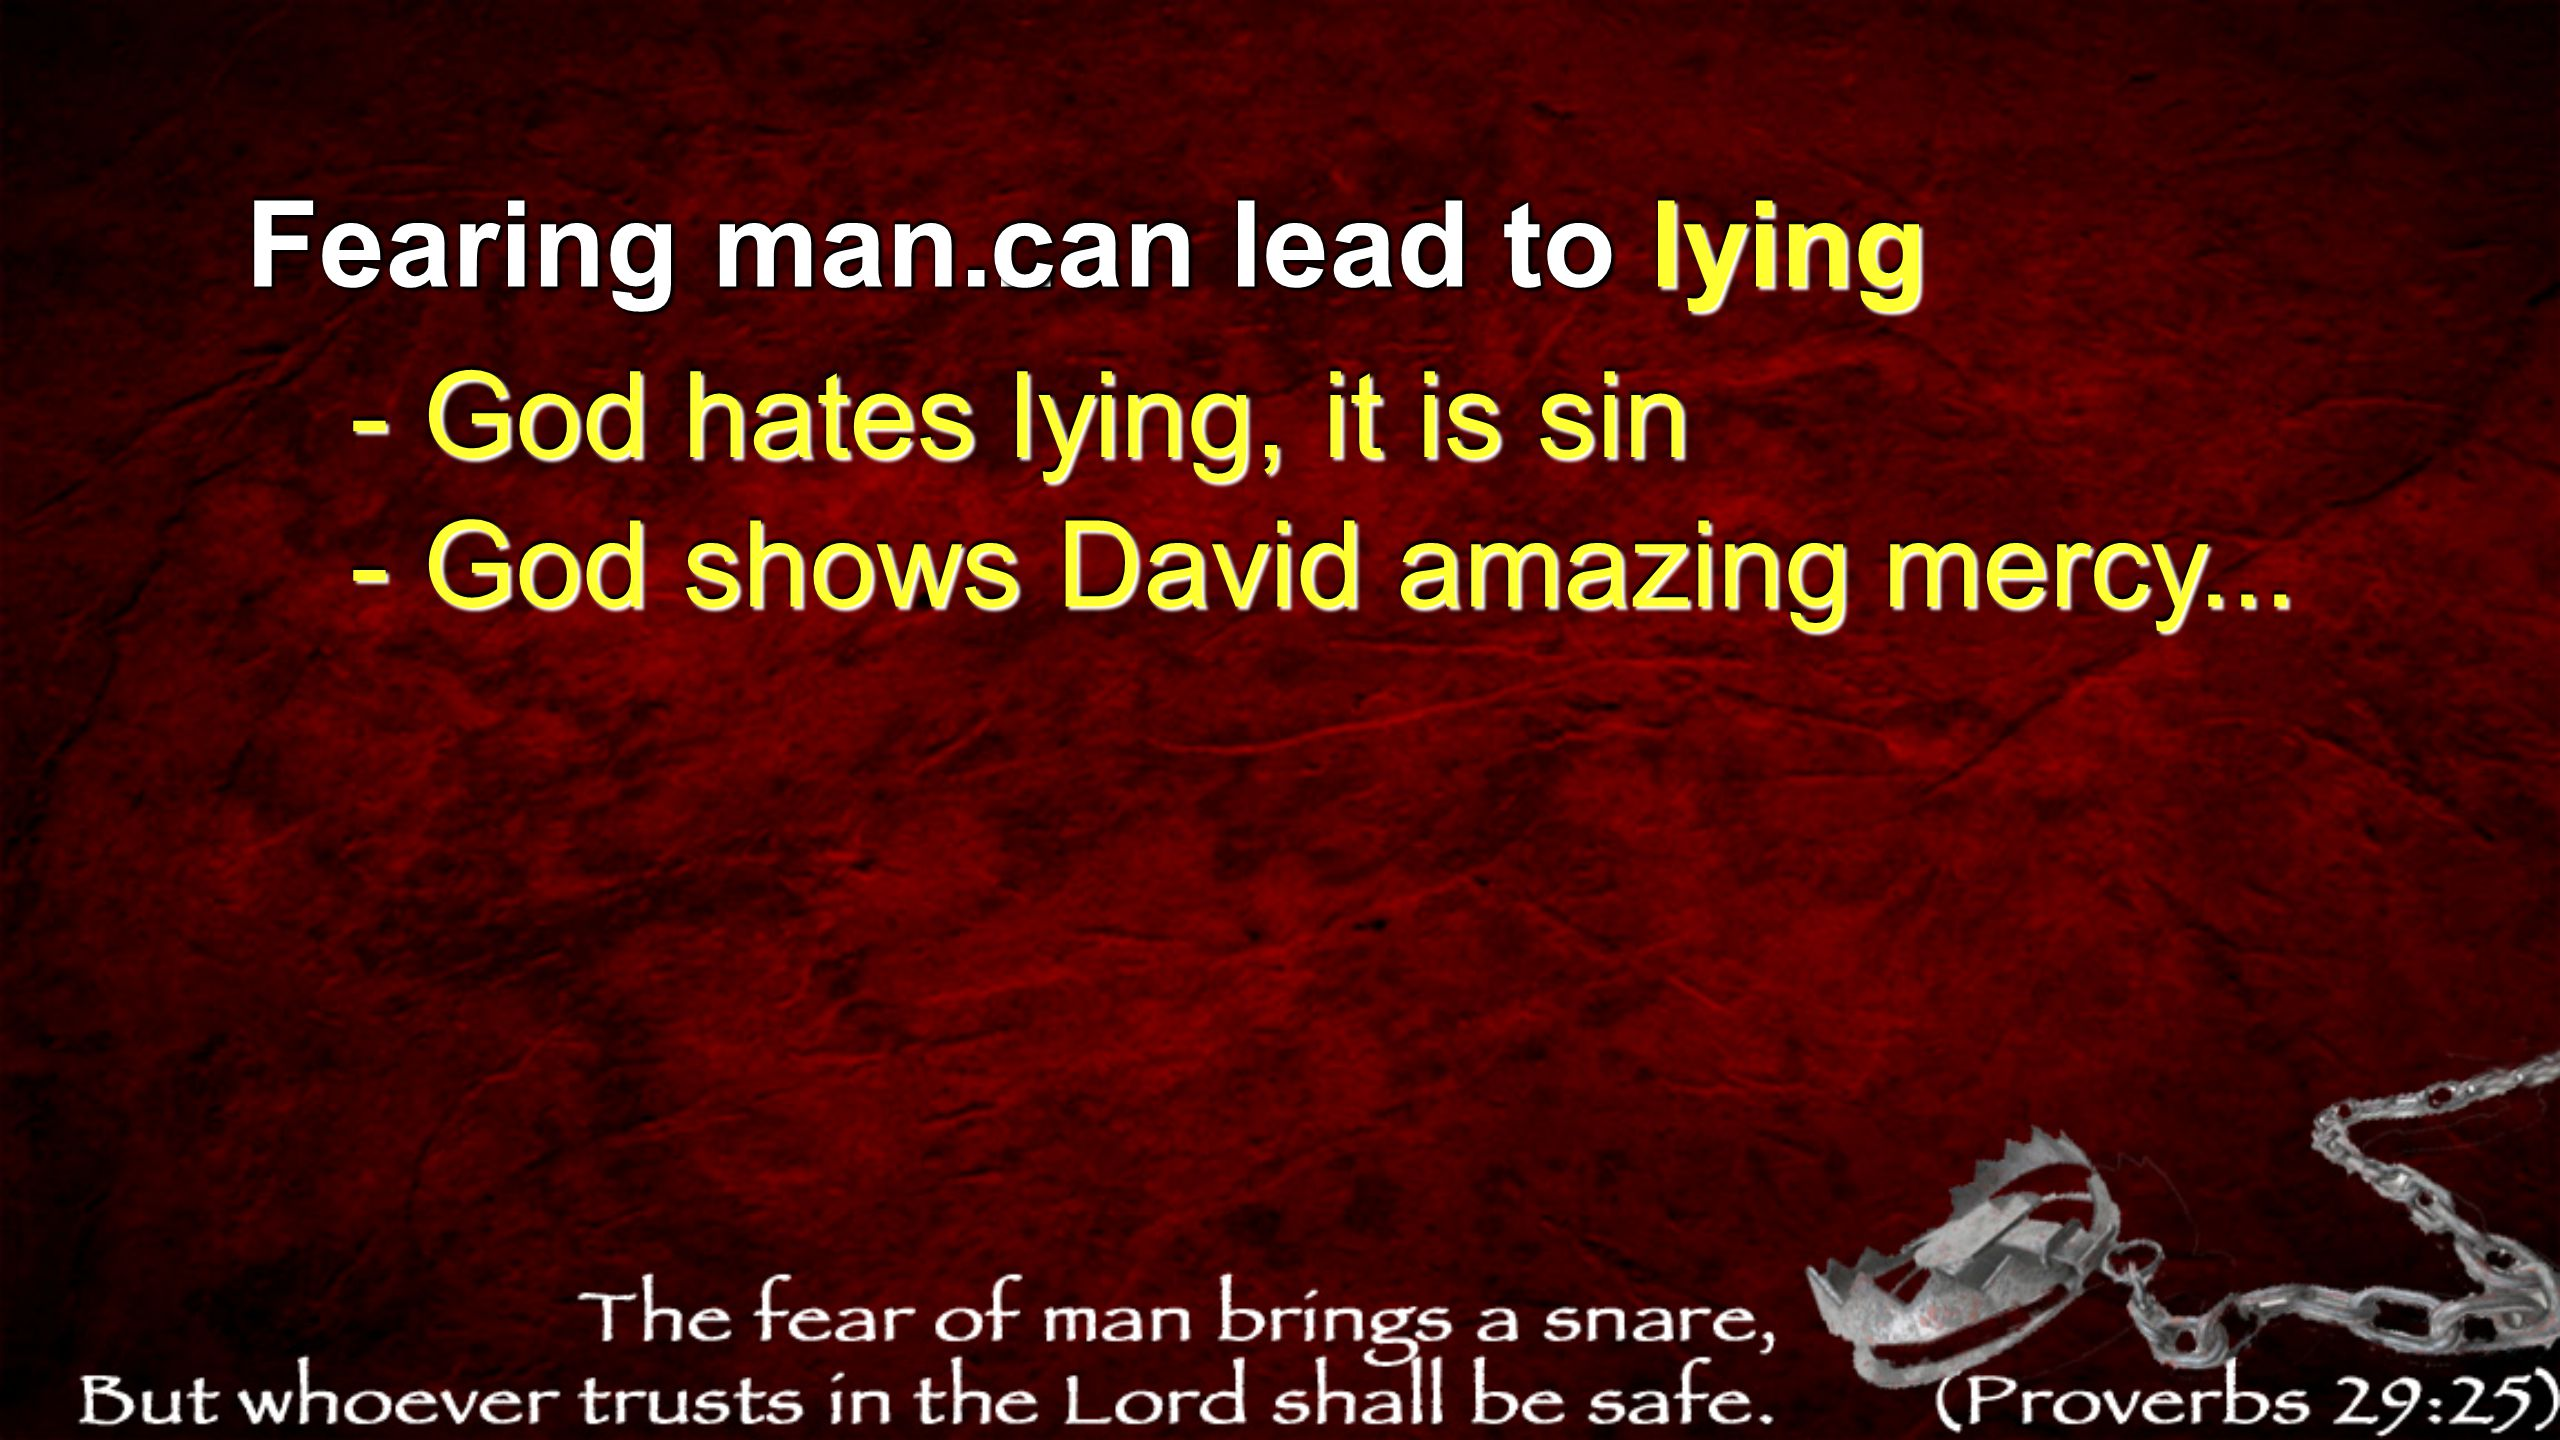 Fearing man... can lead to lying - God hates lying, it is sin - God shows David amazing mercy...